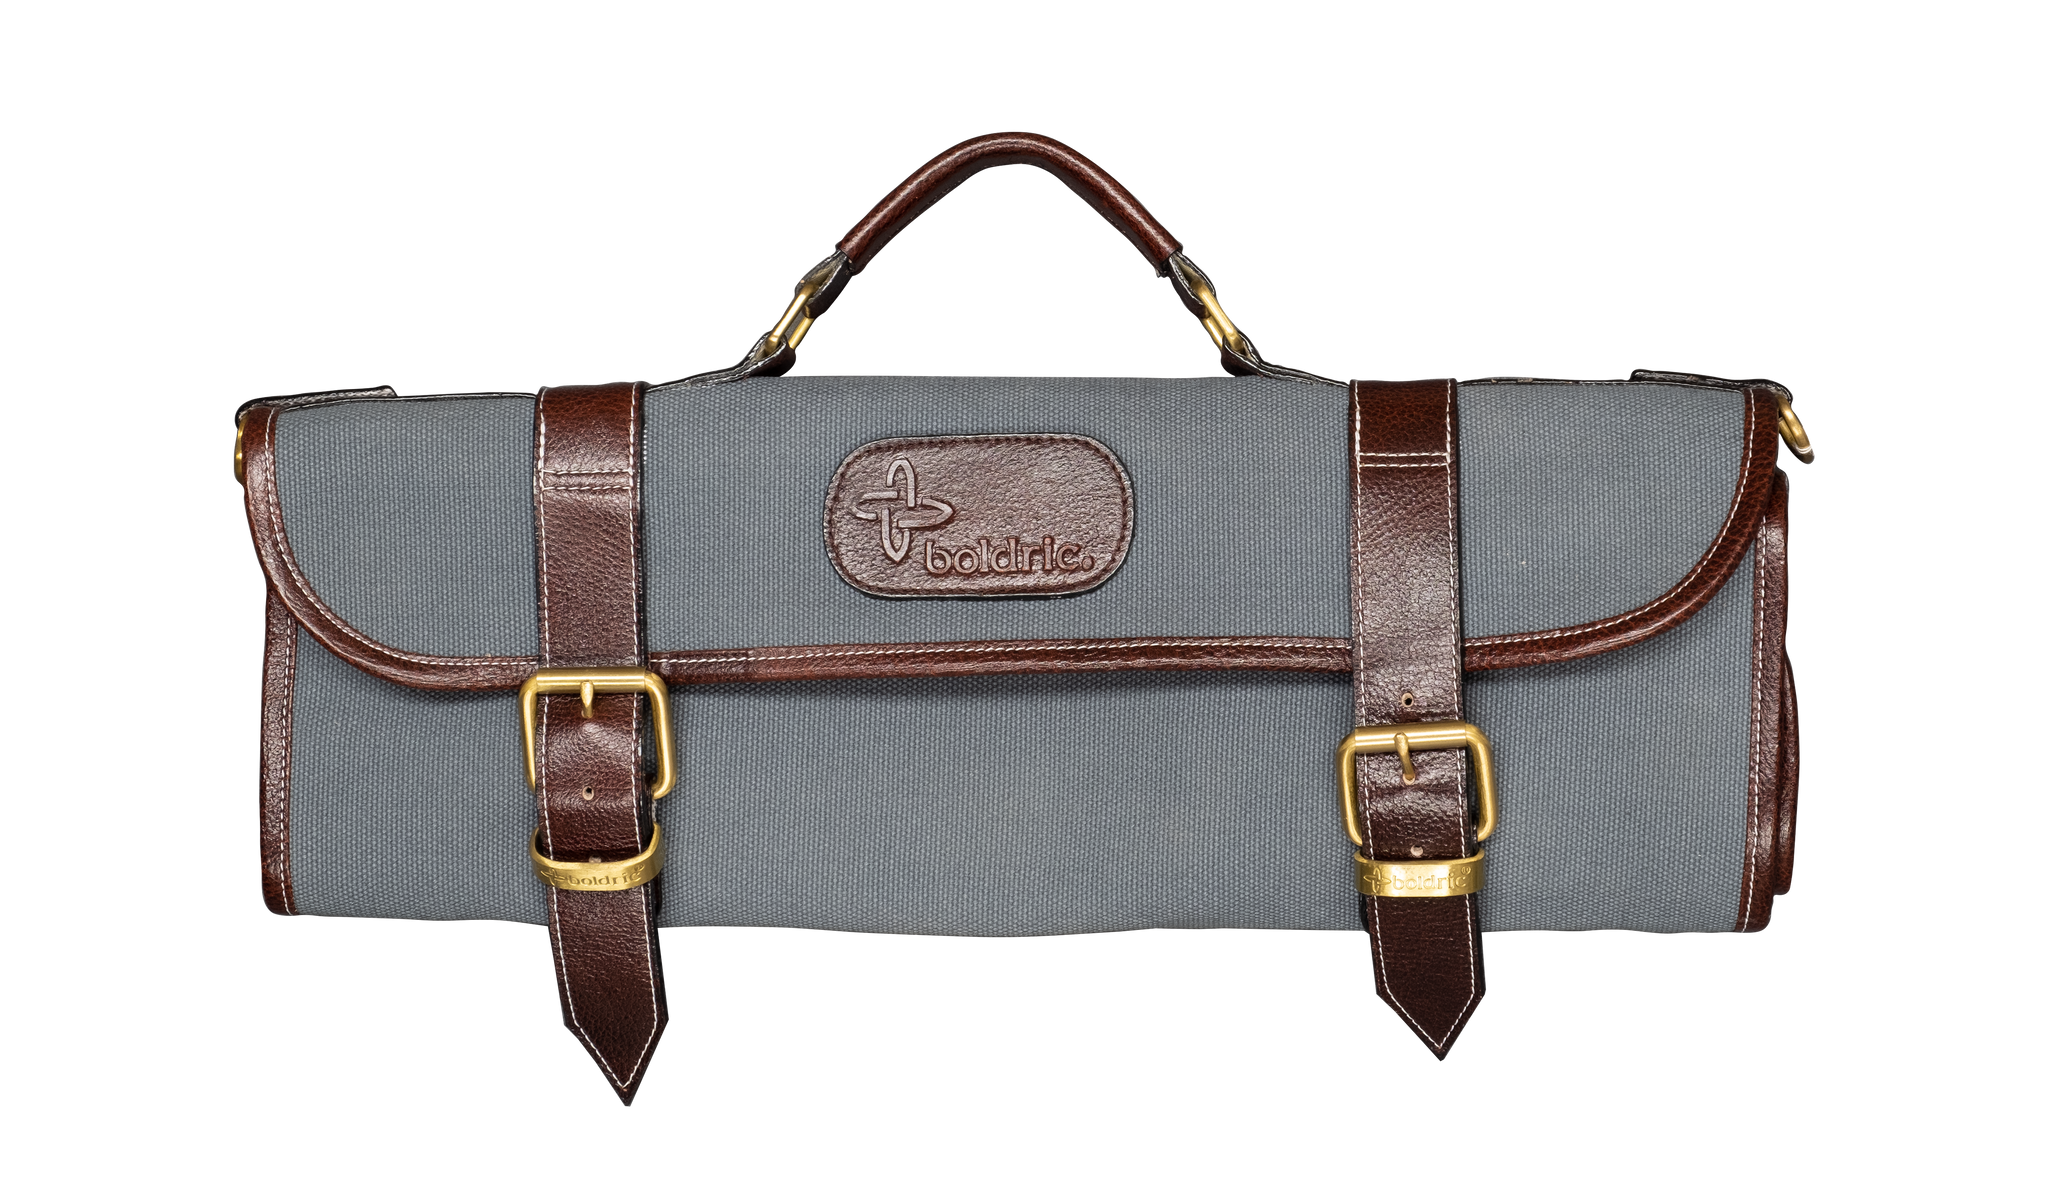 Boldric Canvas Knife Bag 9 Pocket Abalone with Straps